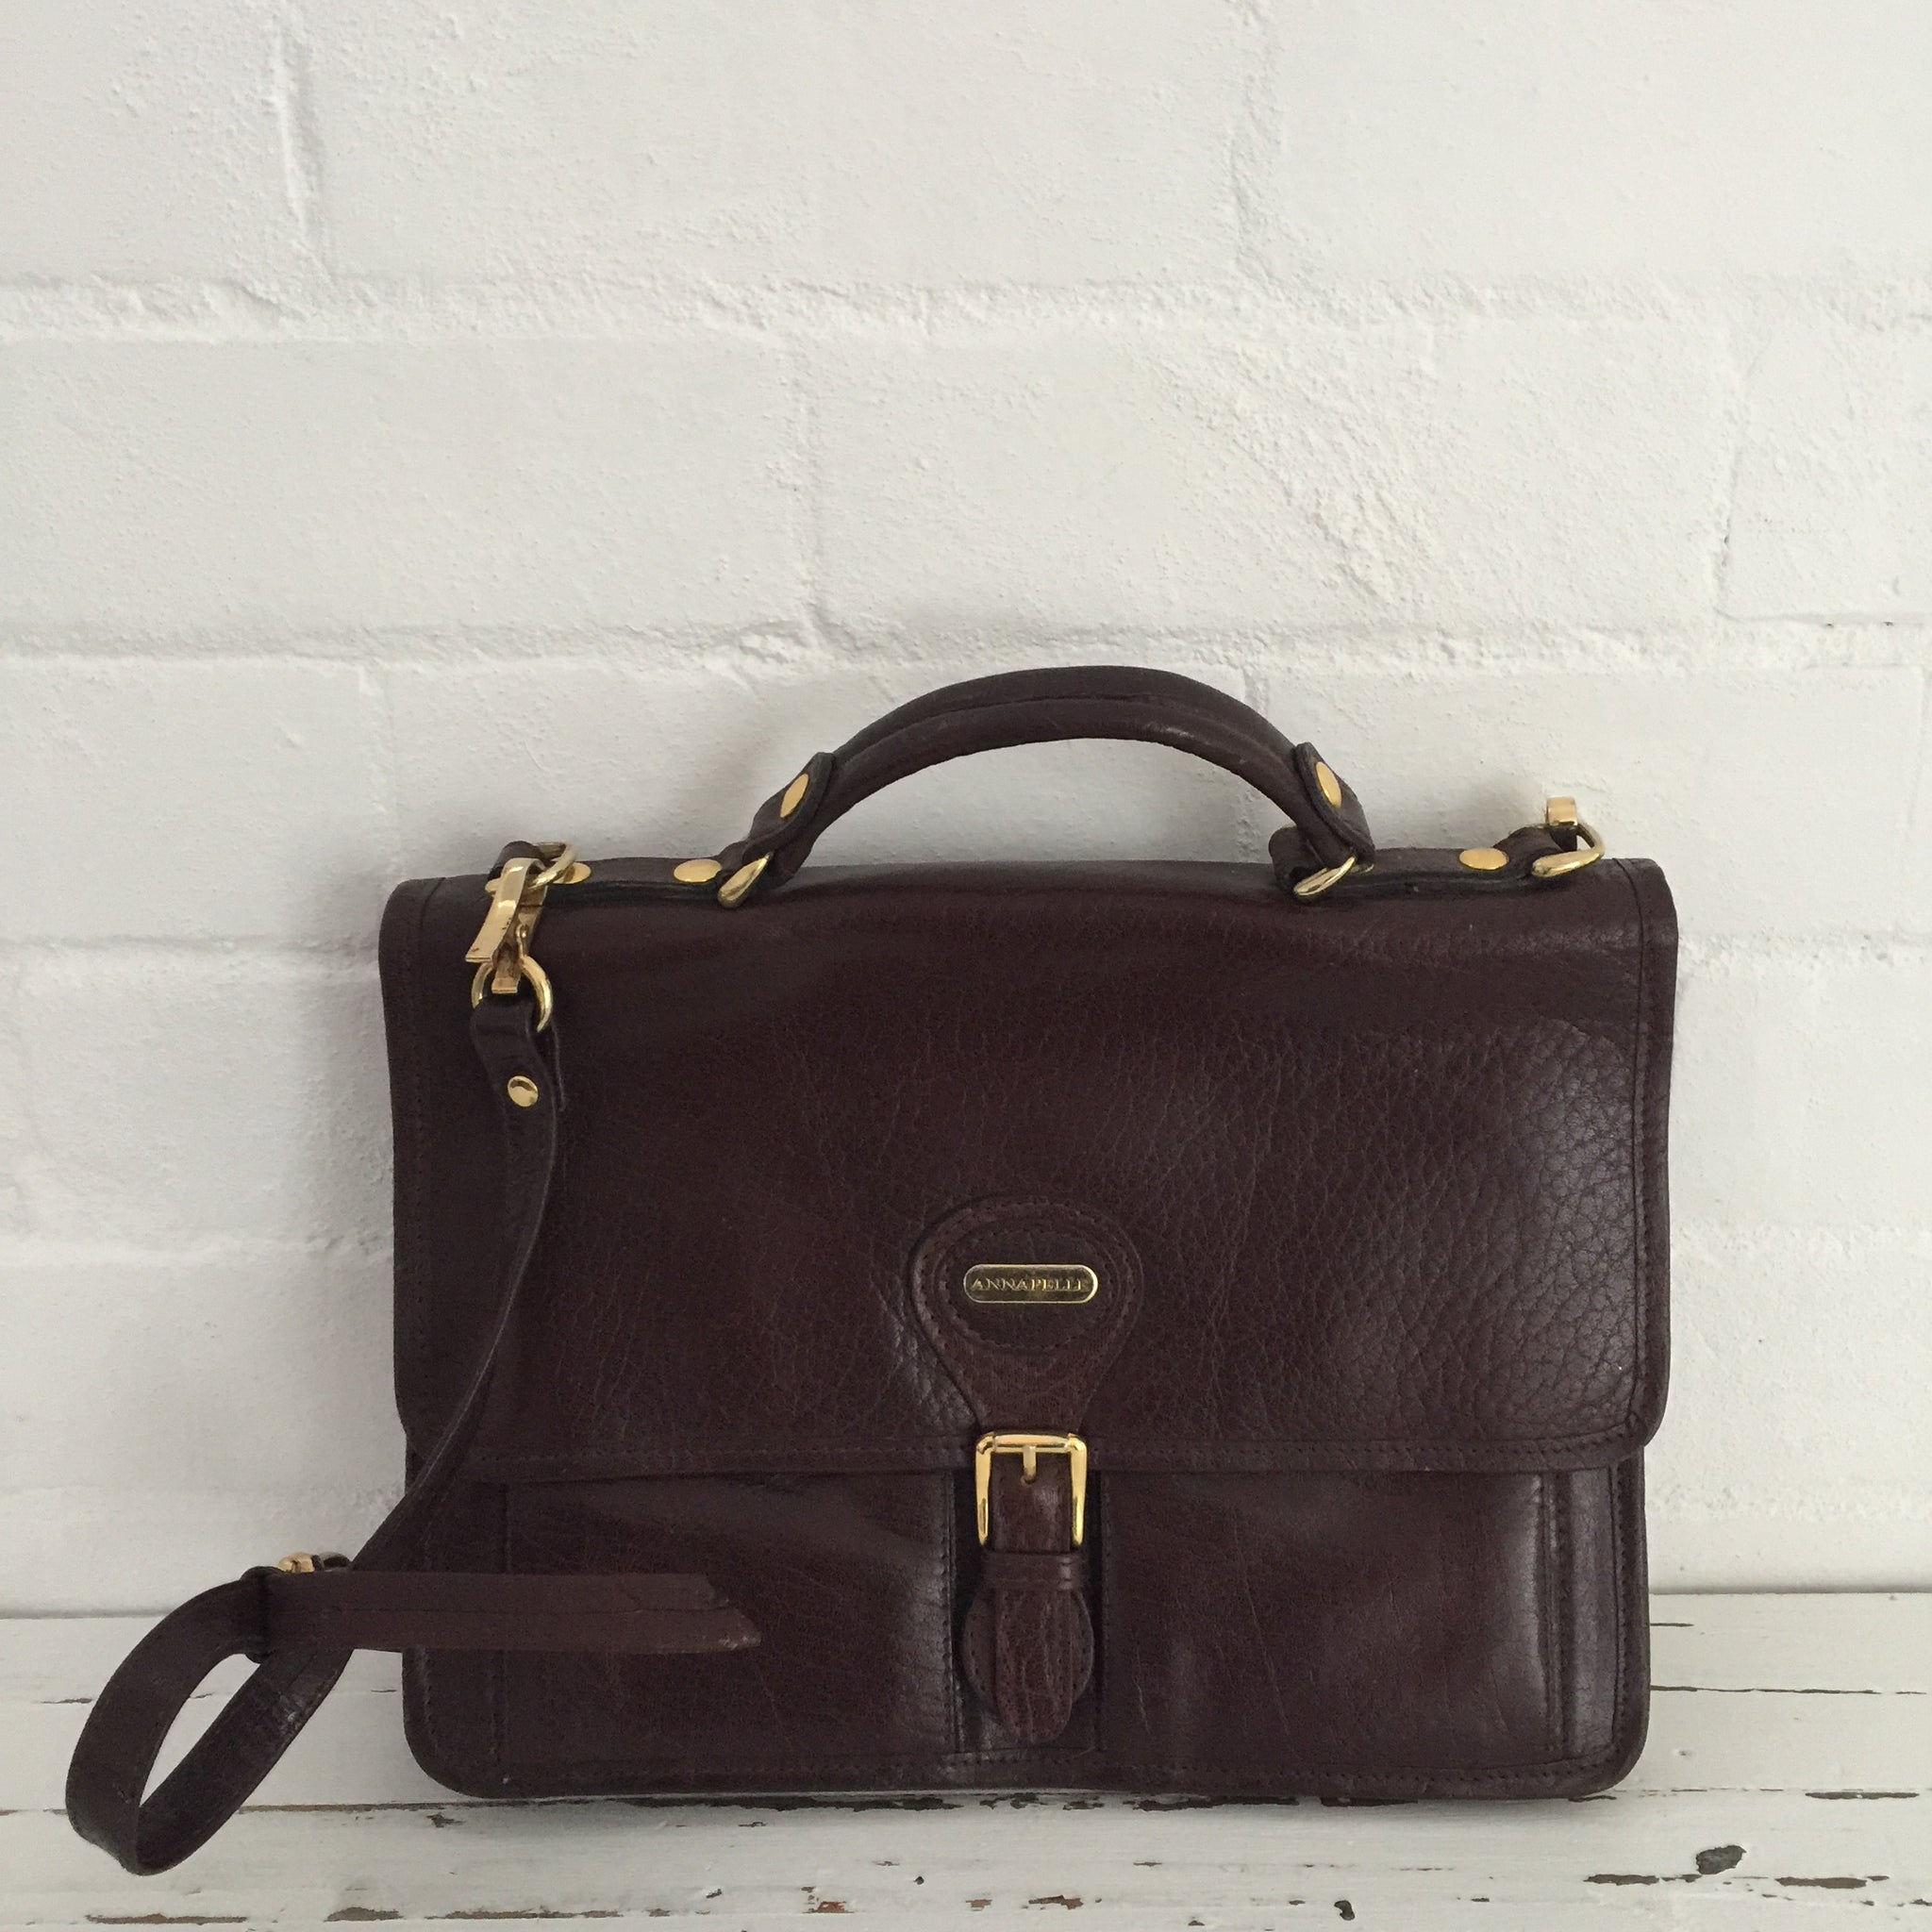 Annapelle Satchel Vintage GENUINE LEATHER Handbag UNI SCHOOL